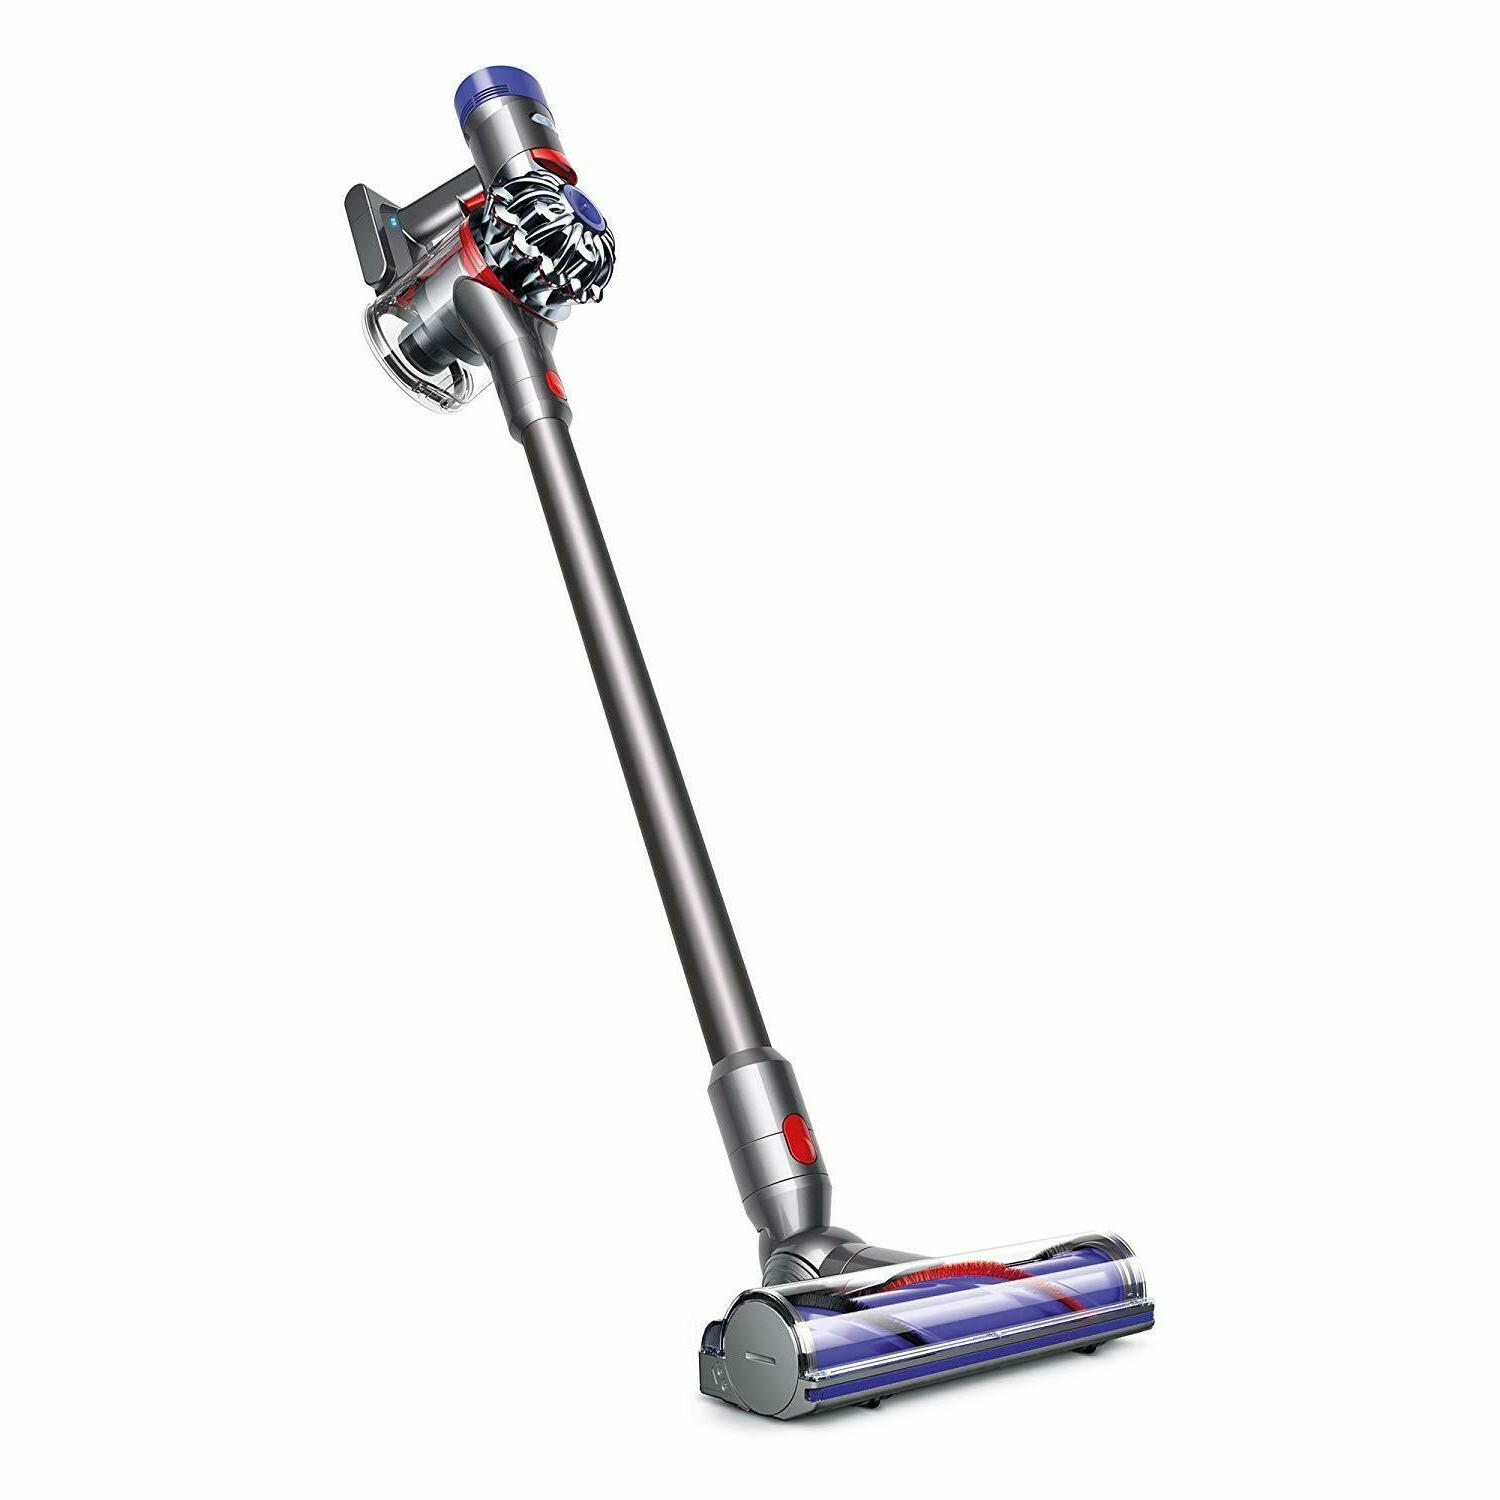 v7 animal cordless stick vacuum cleaner iron